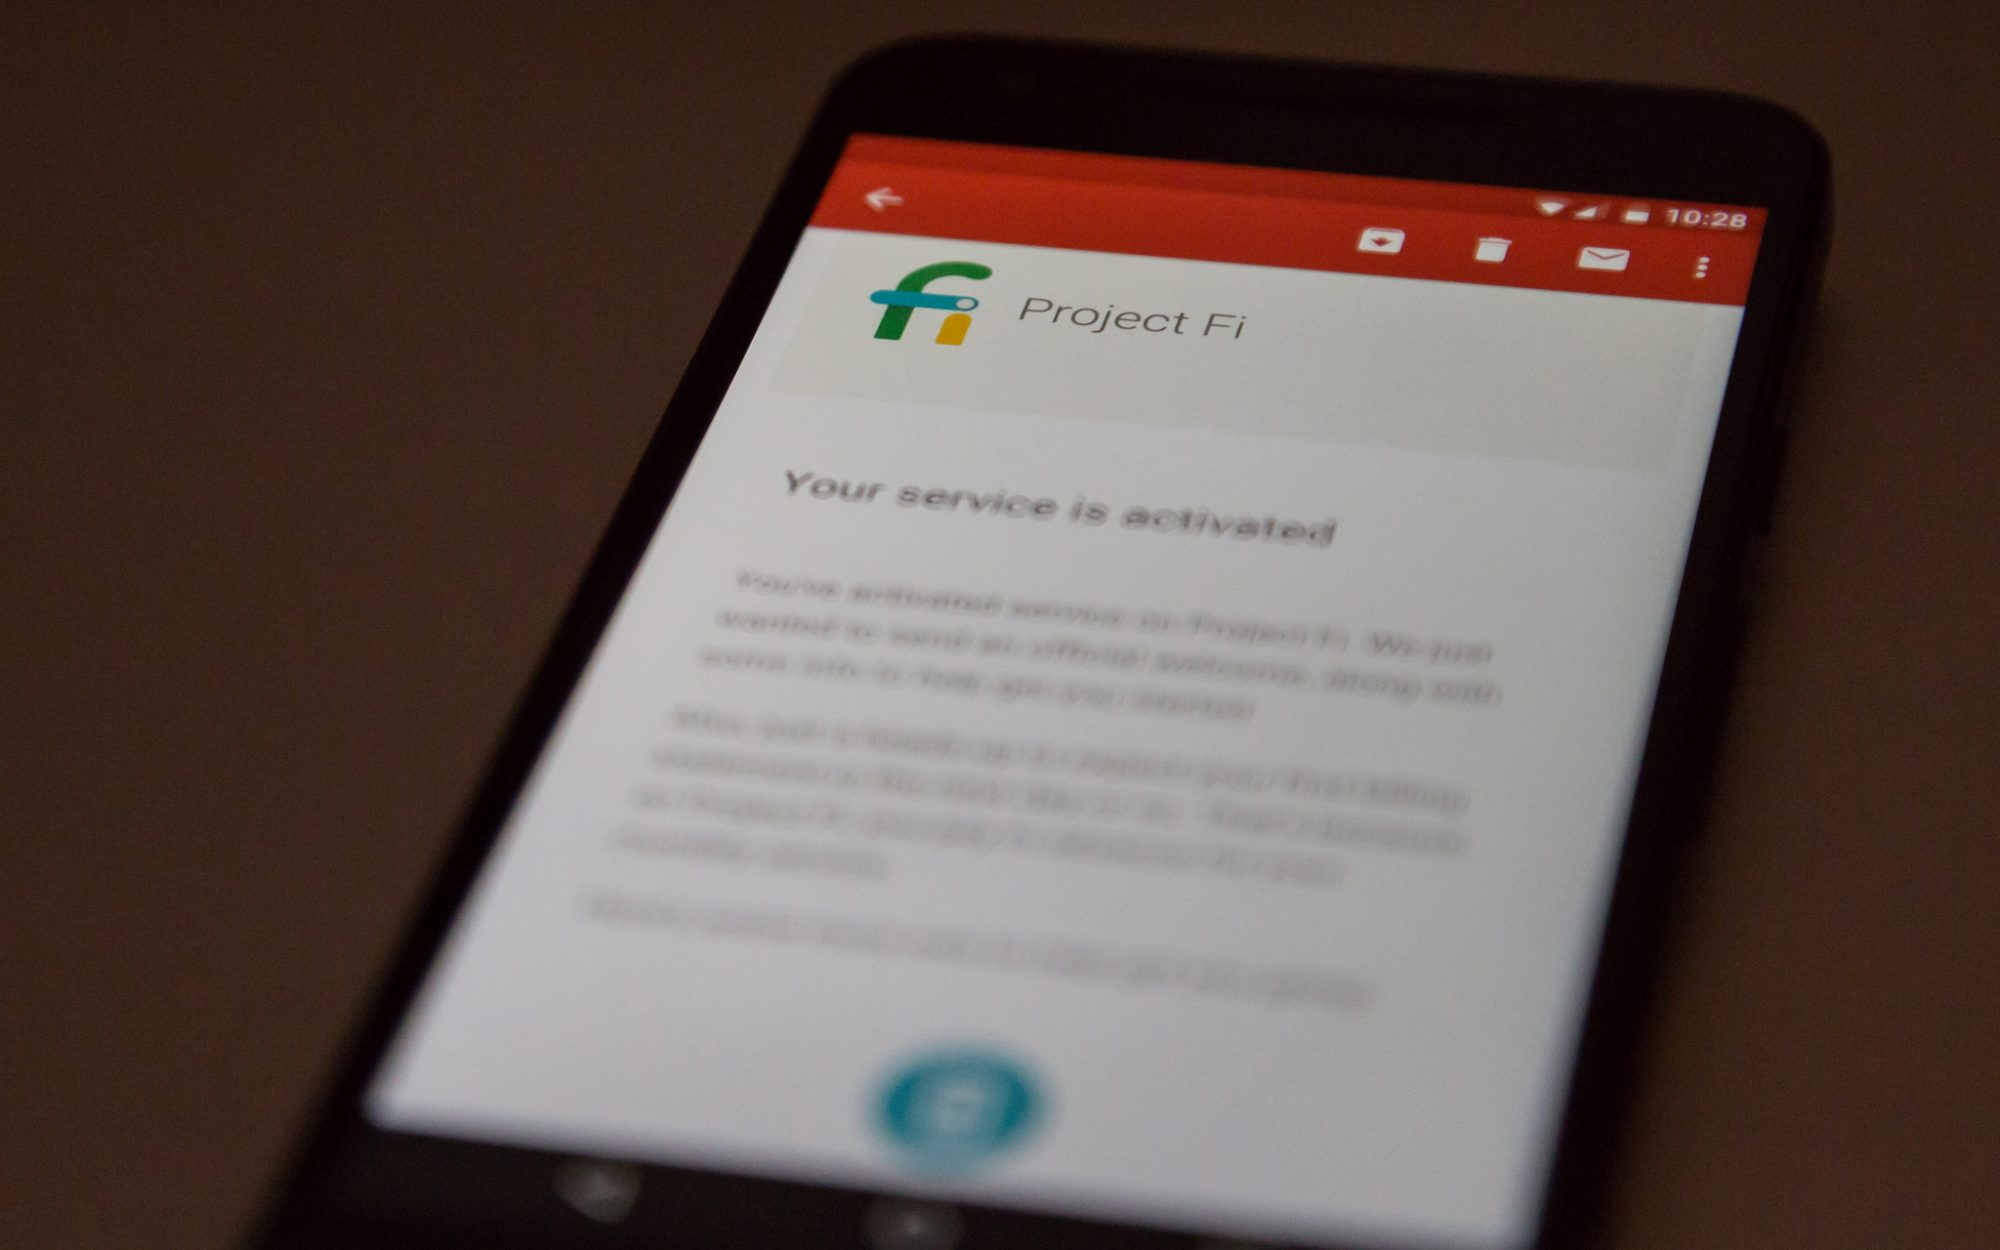 Google announces faster speeds for Project Fi